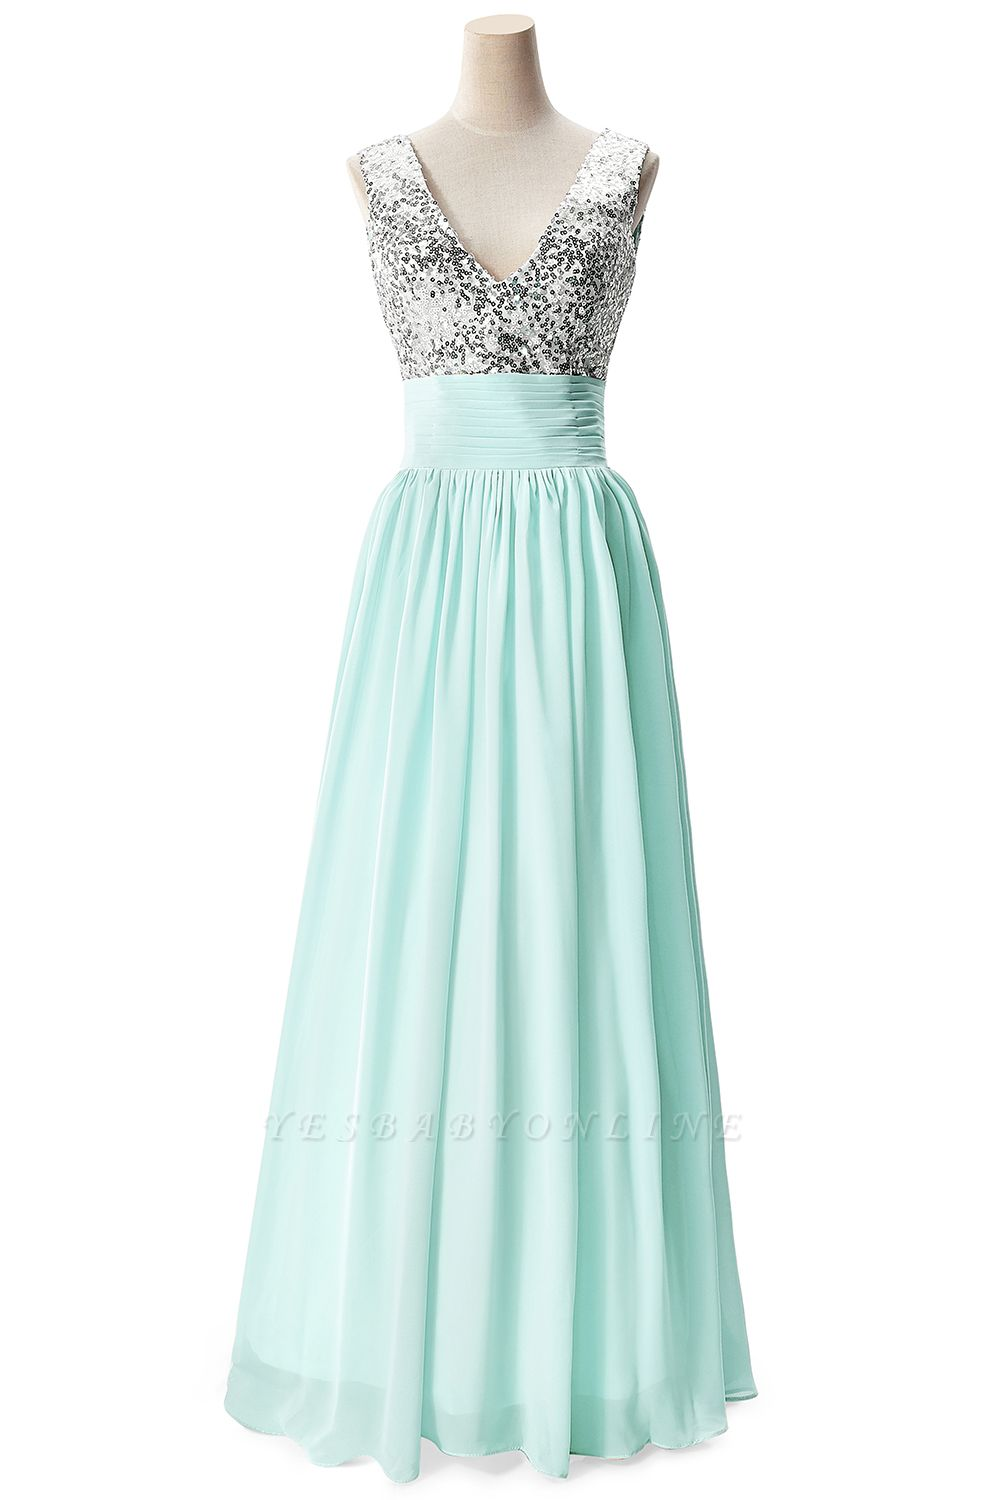 Cheap A-line V-neck Chiffon Party Dress With Sequined in Stock